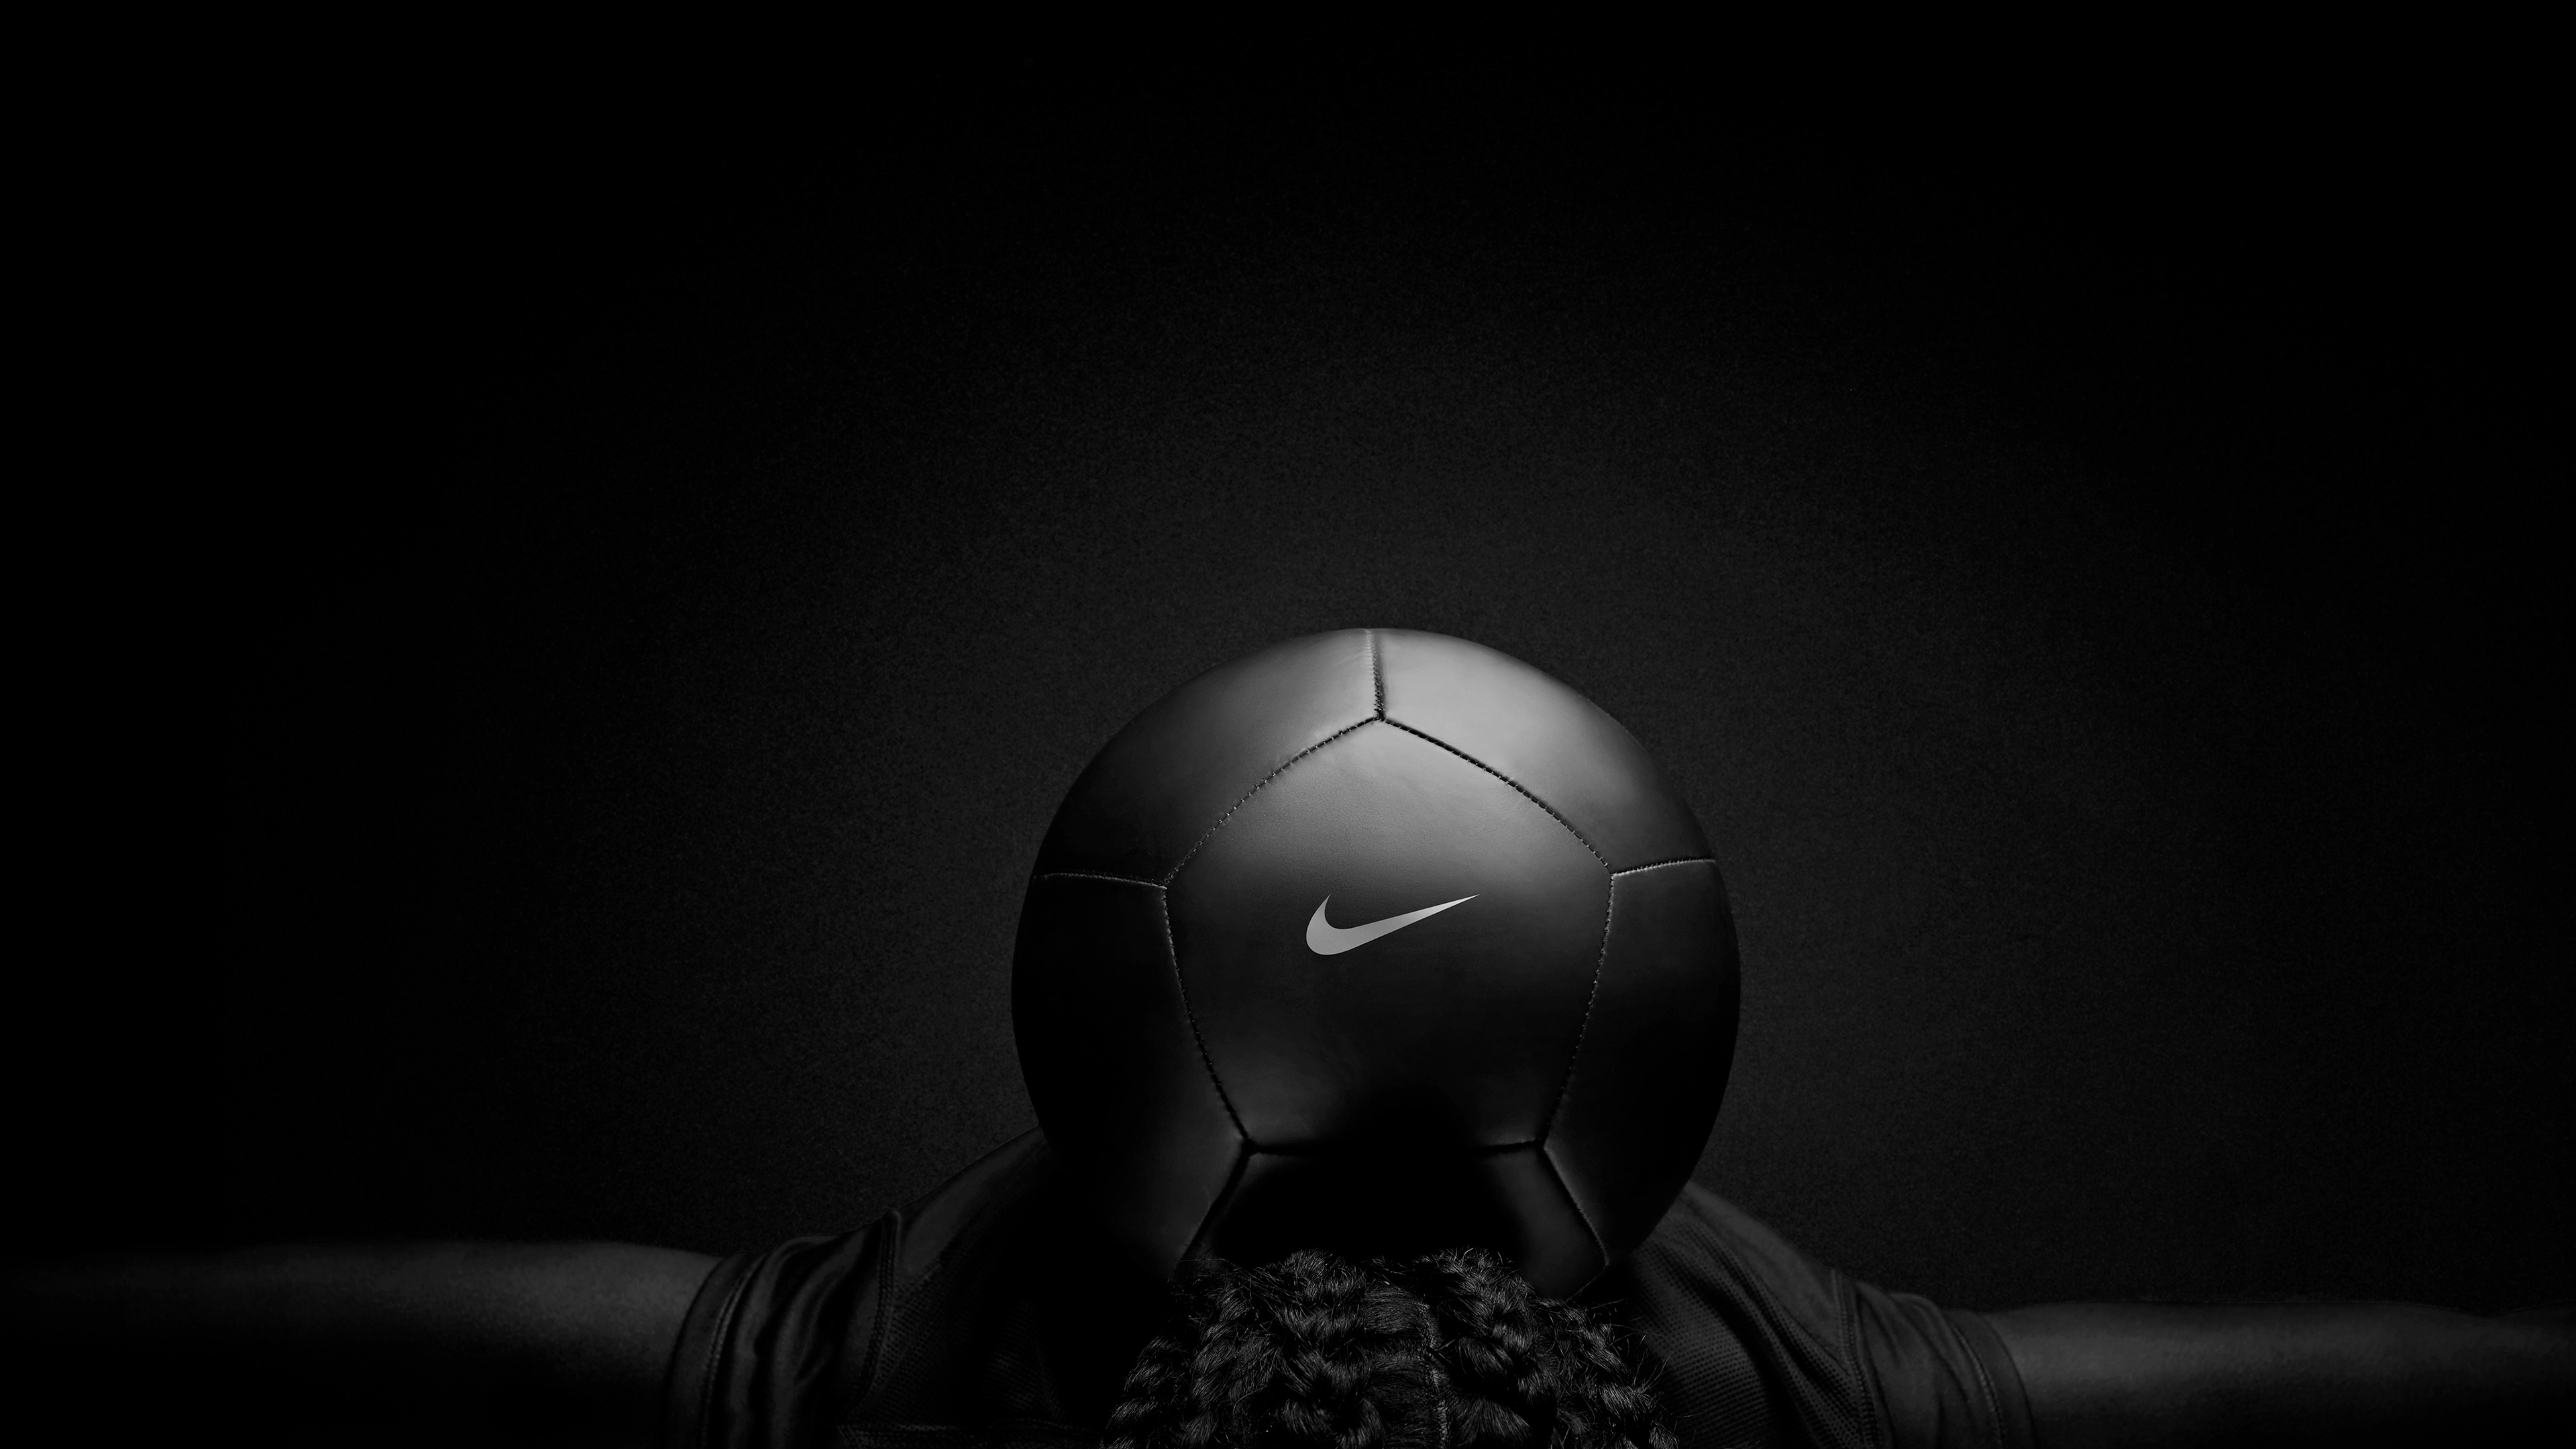 Wallpaper 4k Nike Black Play Football 4k Wallpapers Dark